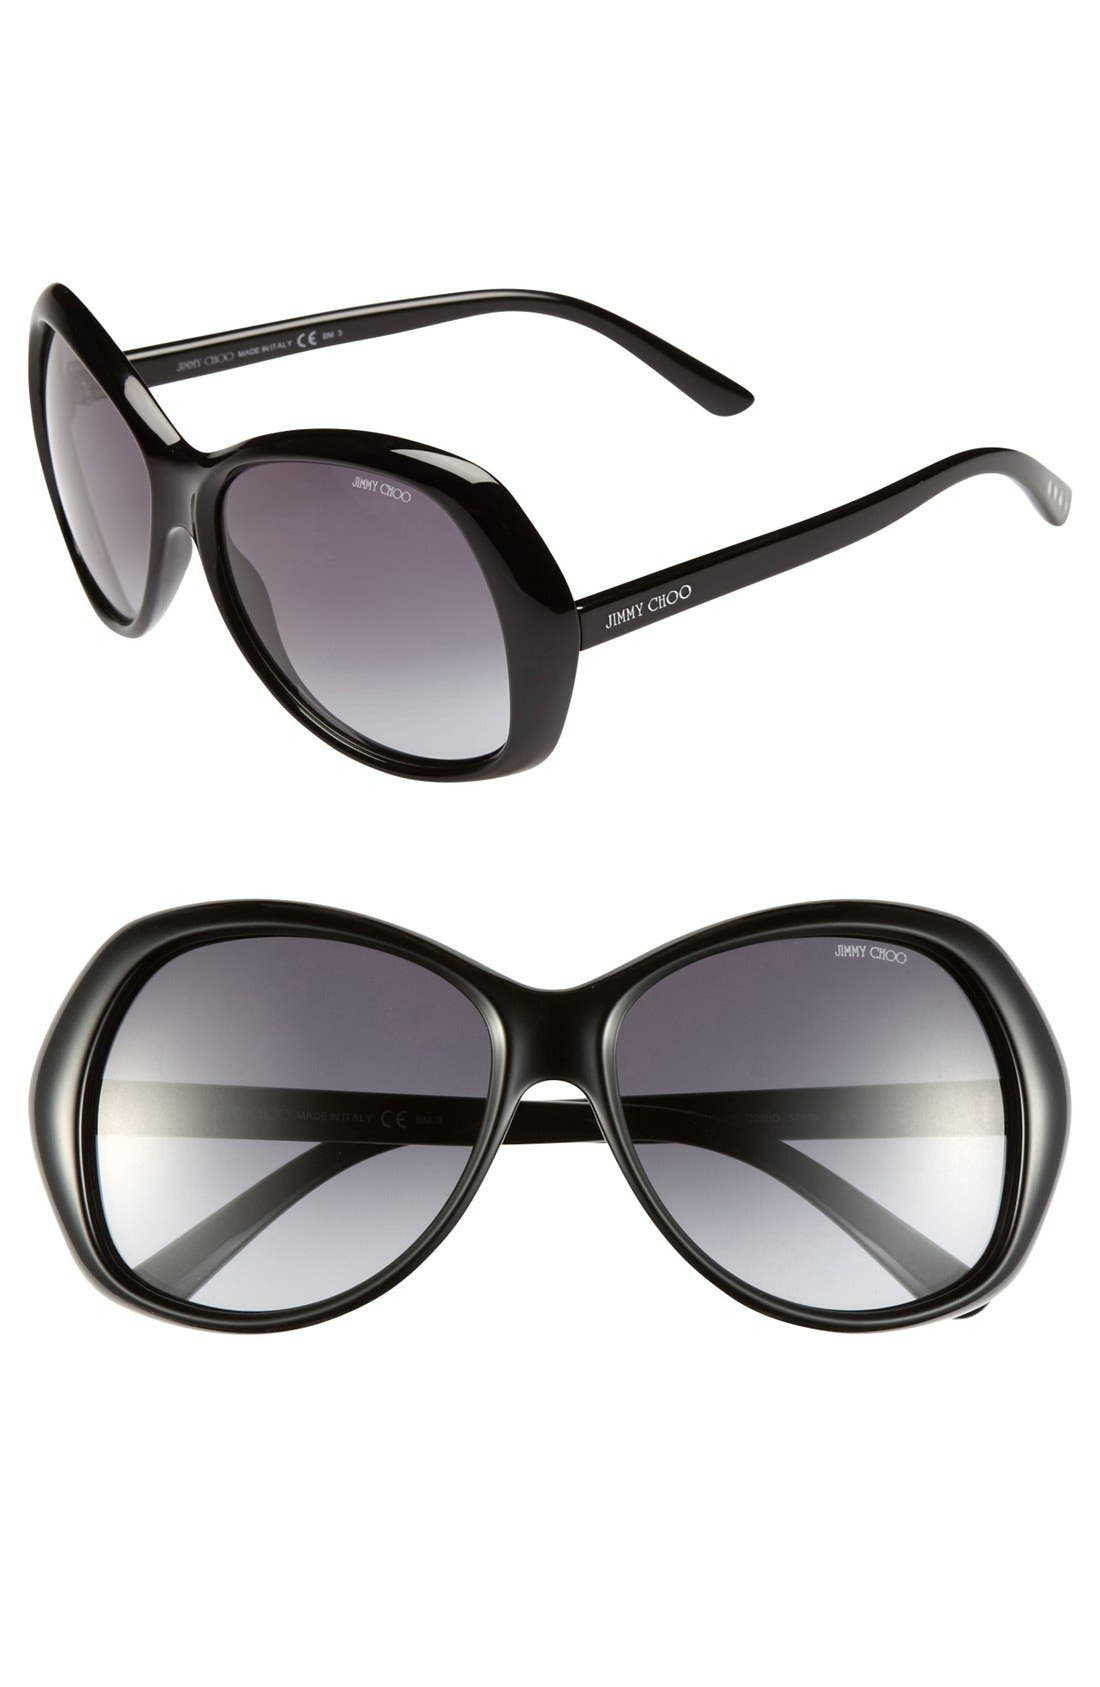 Alternate Image 1 Selected - Jimmy Choo 'Galen' 57mm Sunglasses